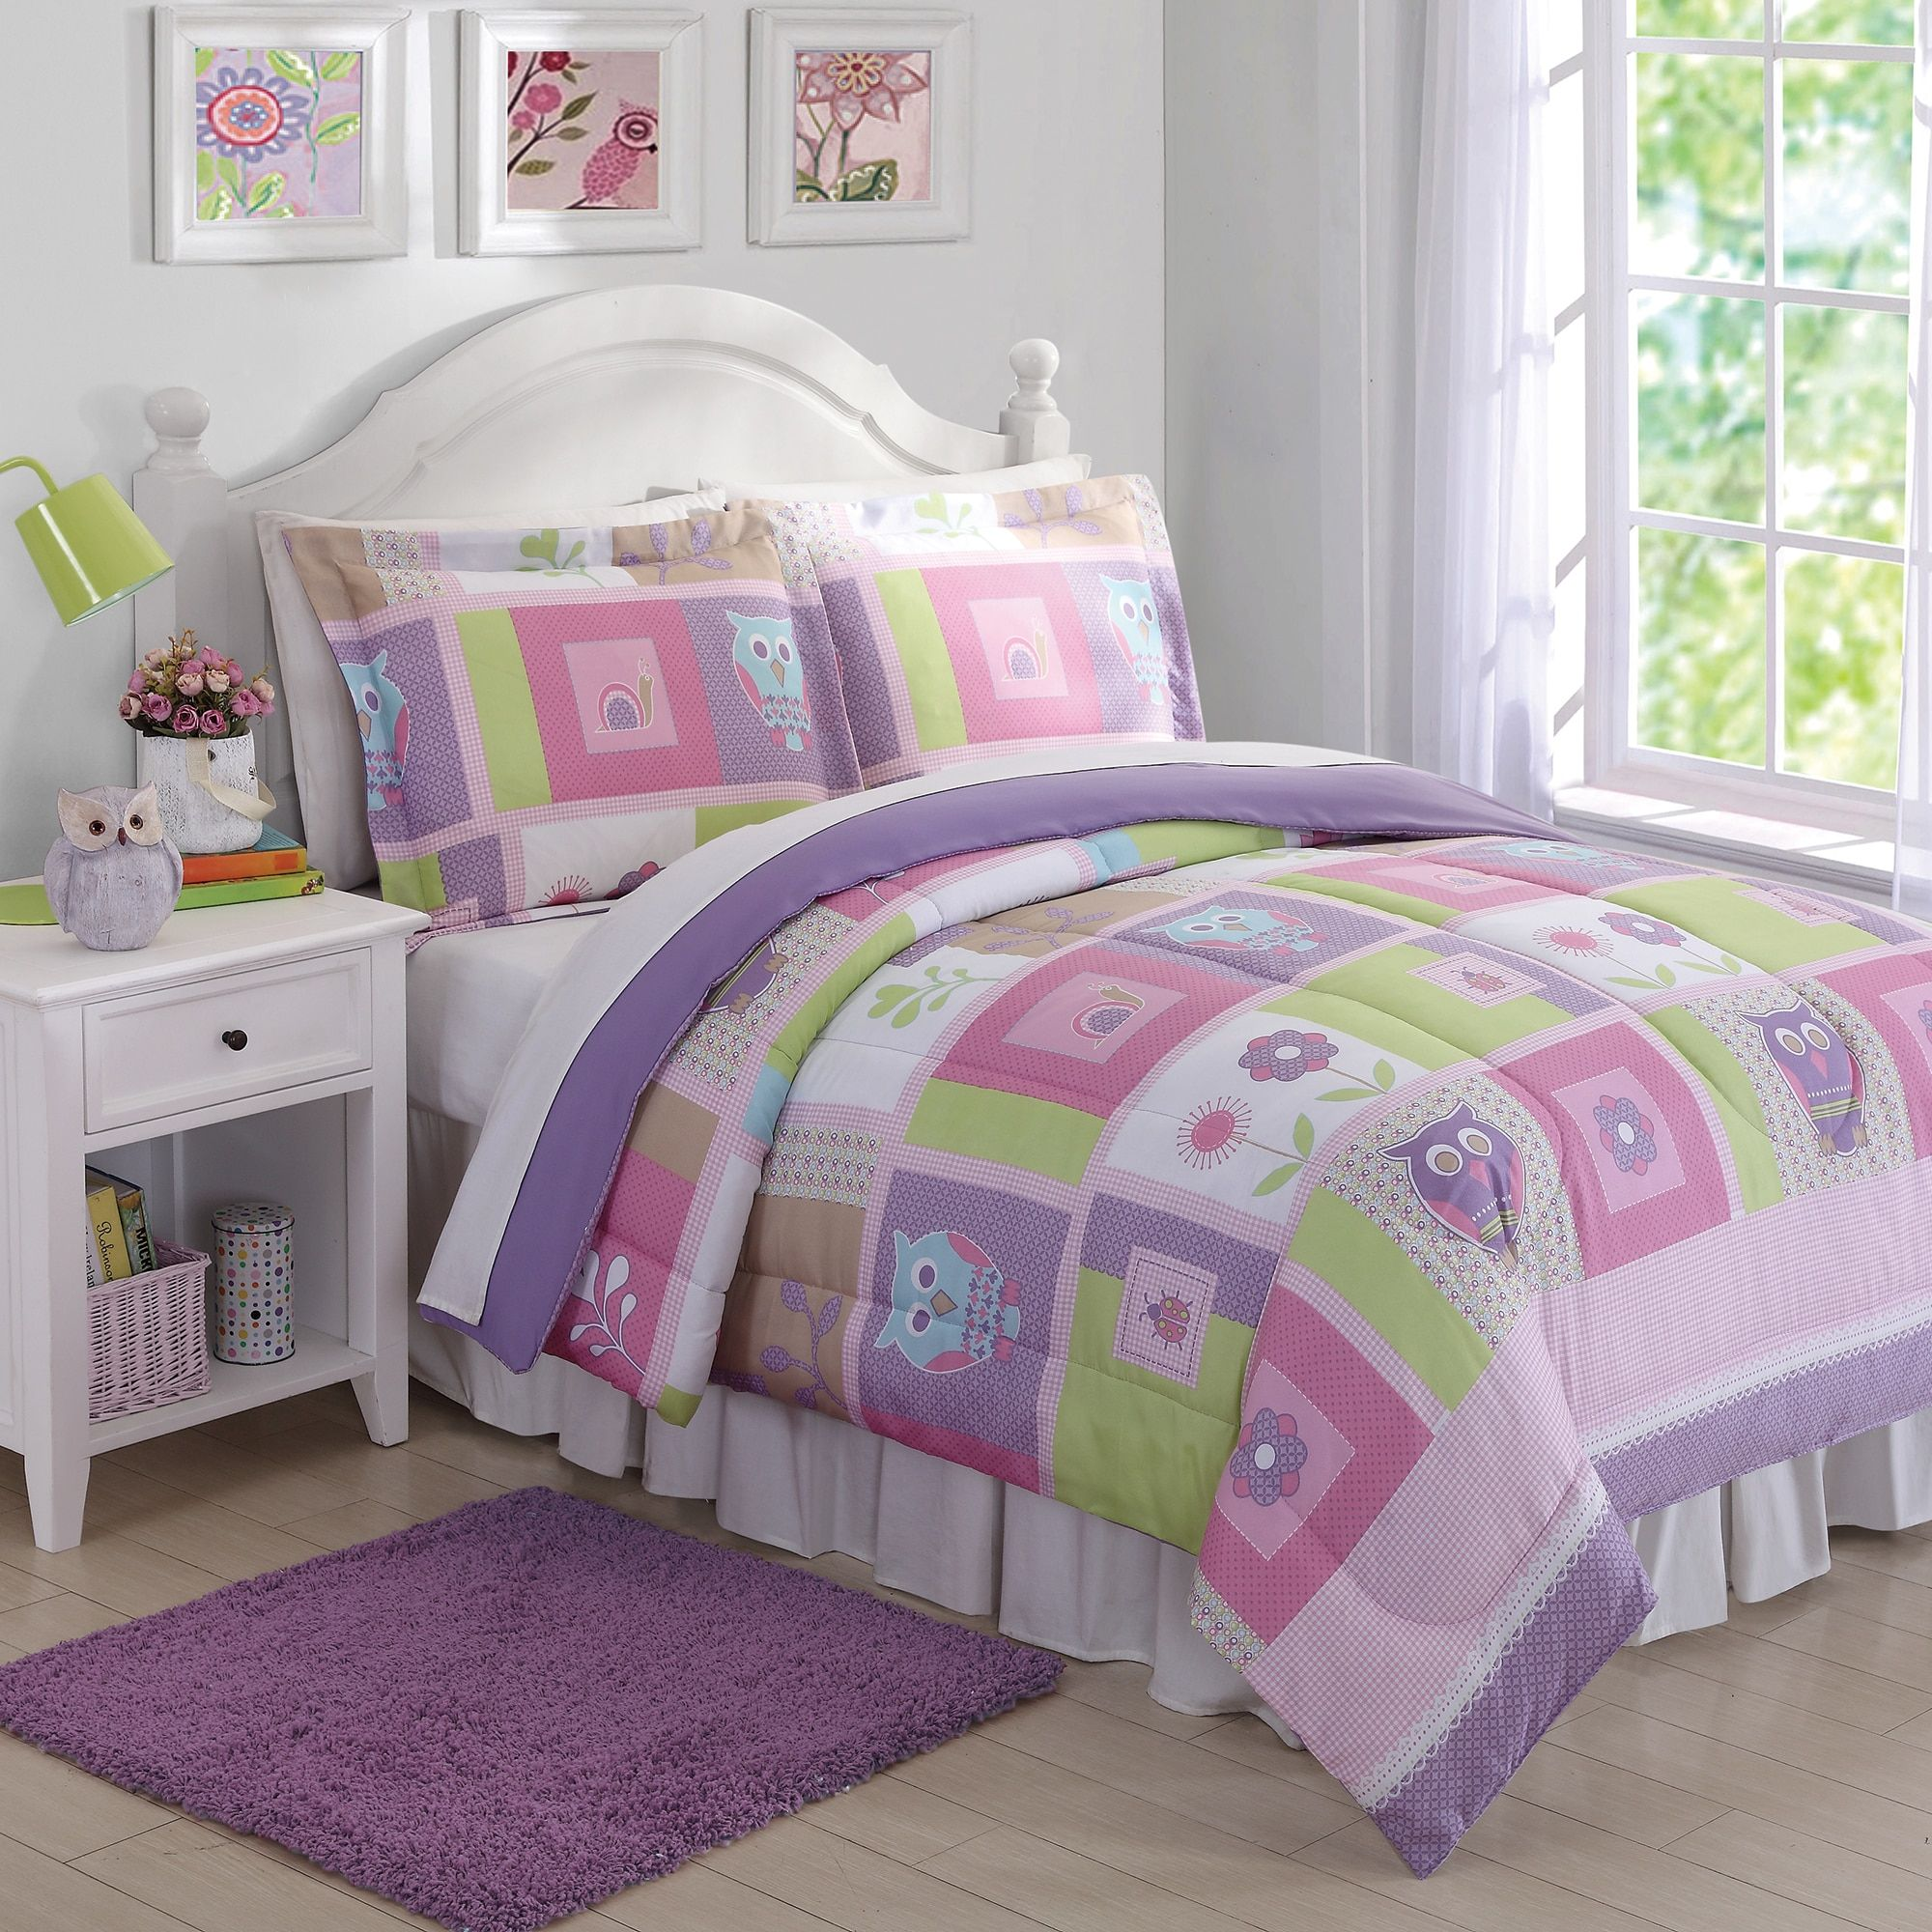 purple intelligent free product set coverlet adley bath quilt today shipping overstock design printed piece bedding